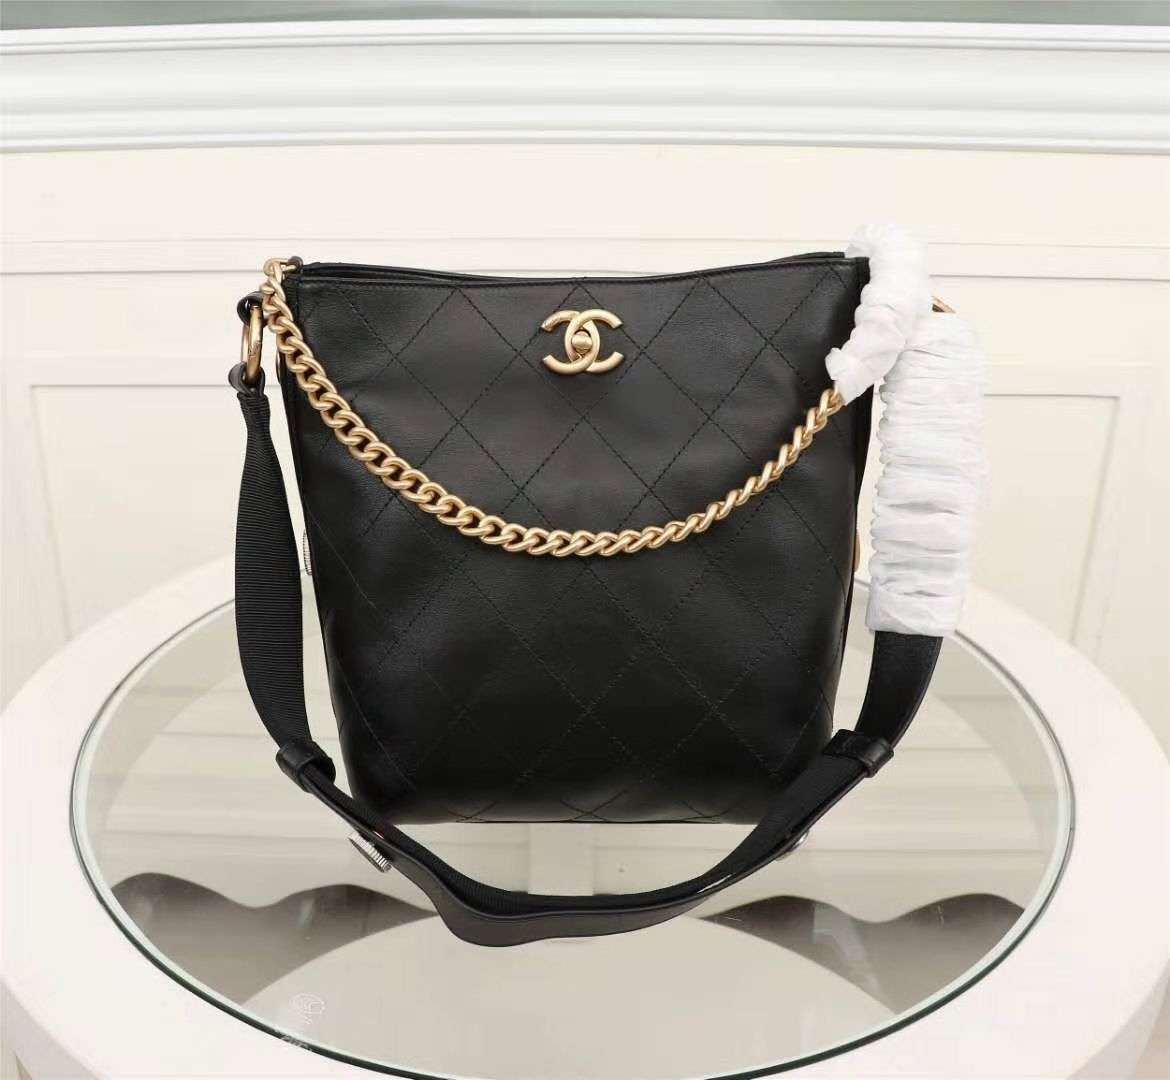 Chanel Hobo Handbag Black A57573